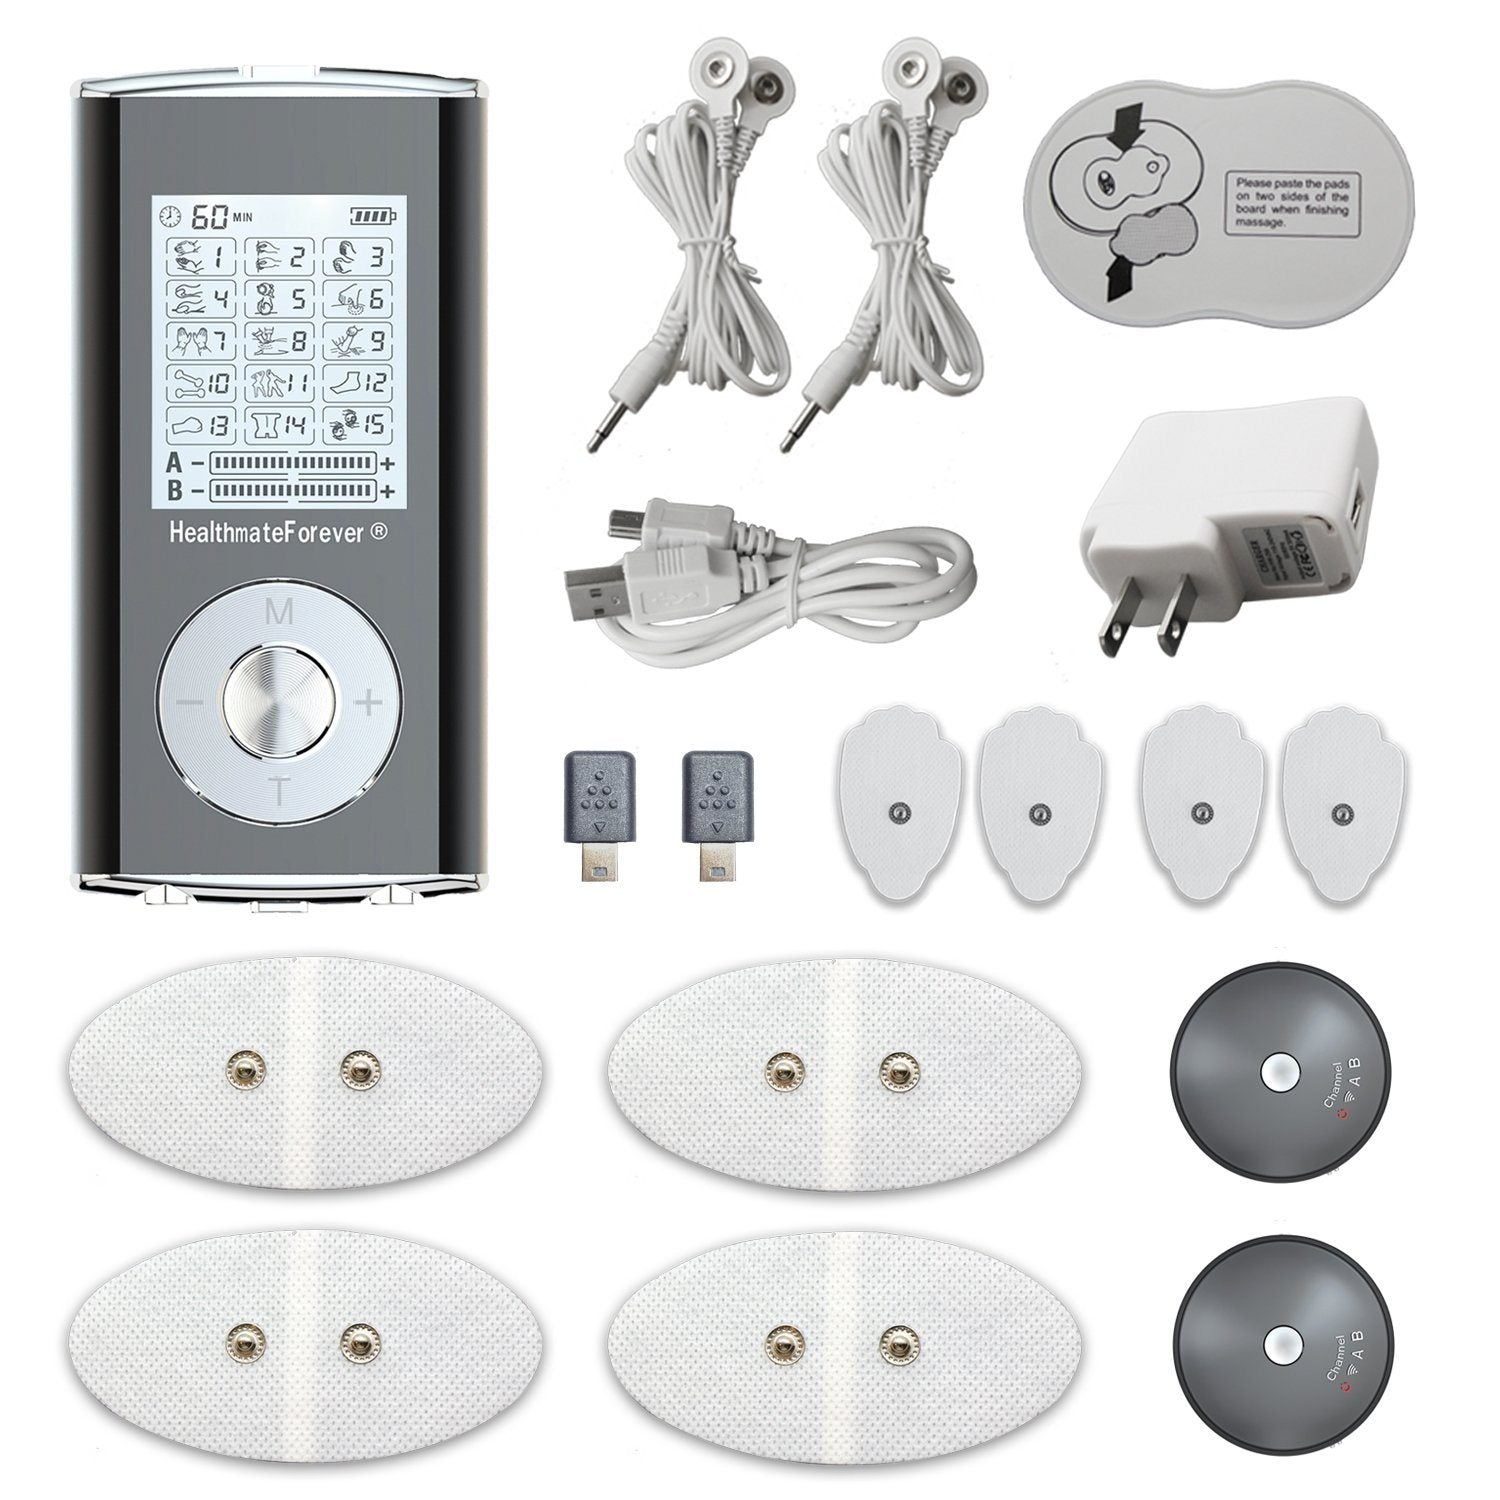 HM15GAB 2nd Edition HealthmateForever Wireless TENS unit & Muscle Stimulator